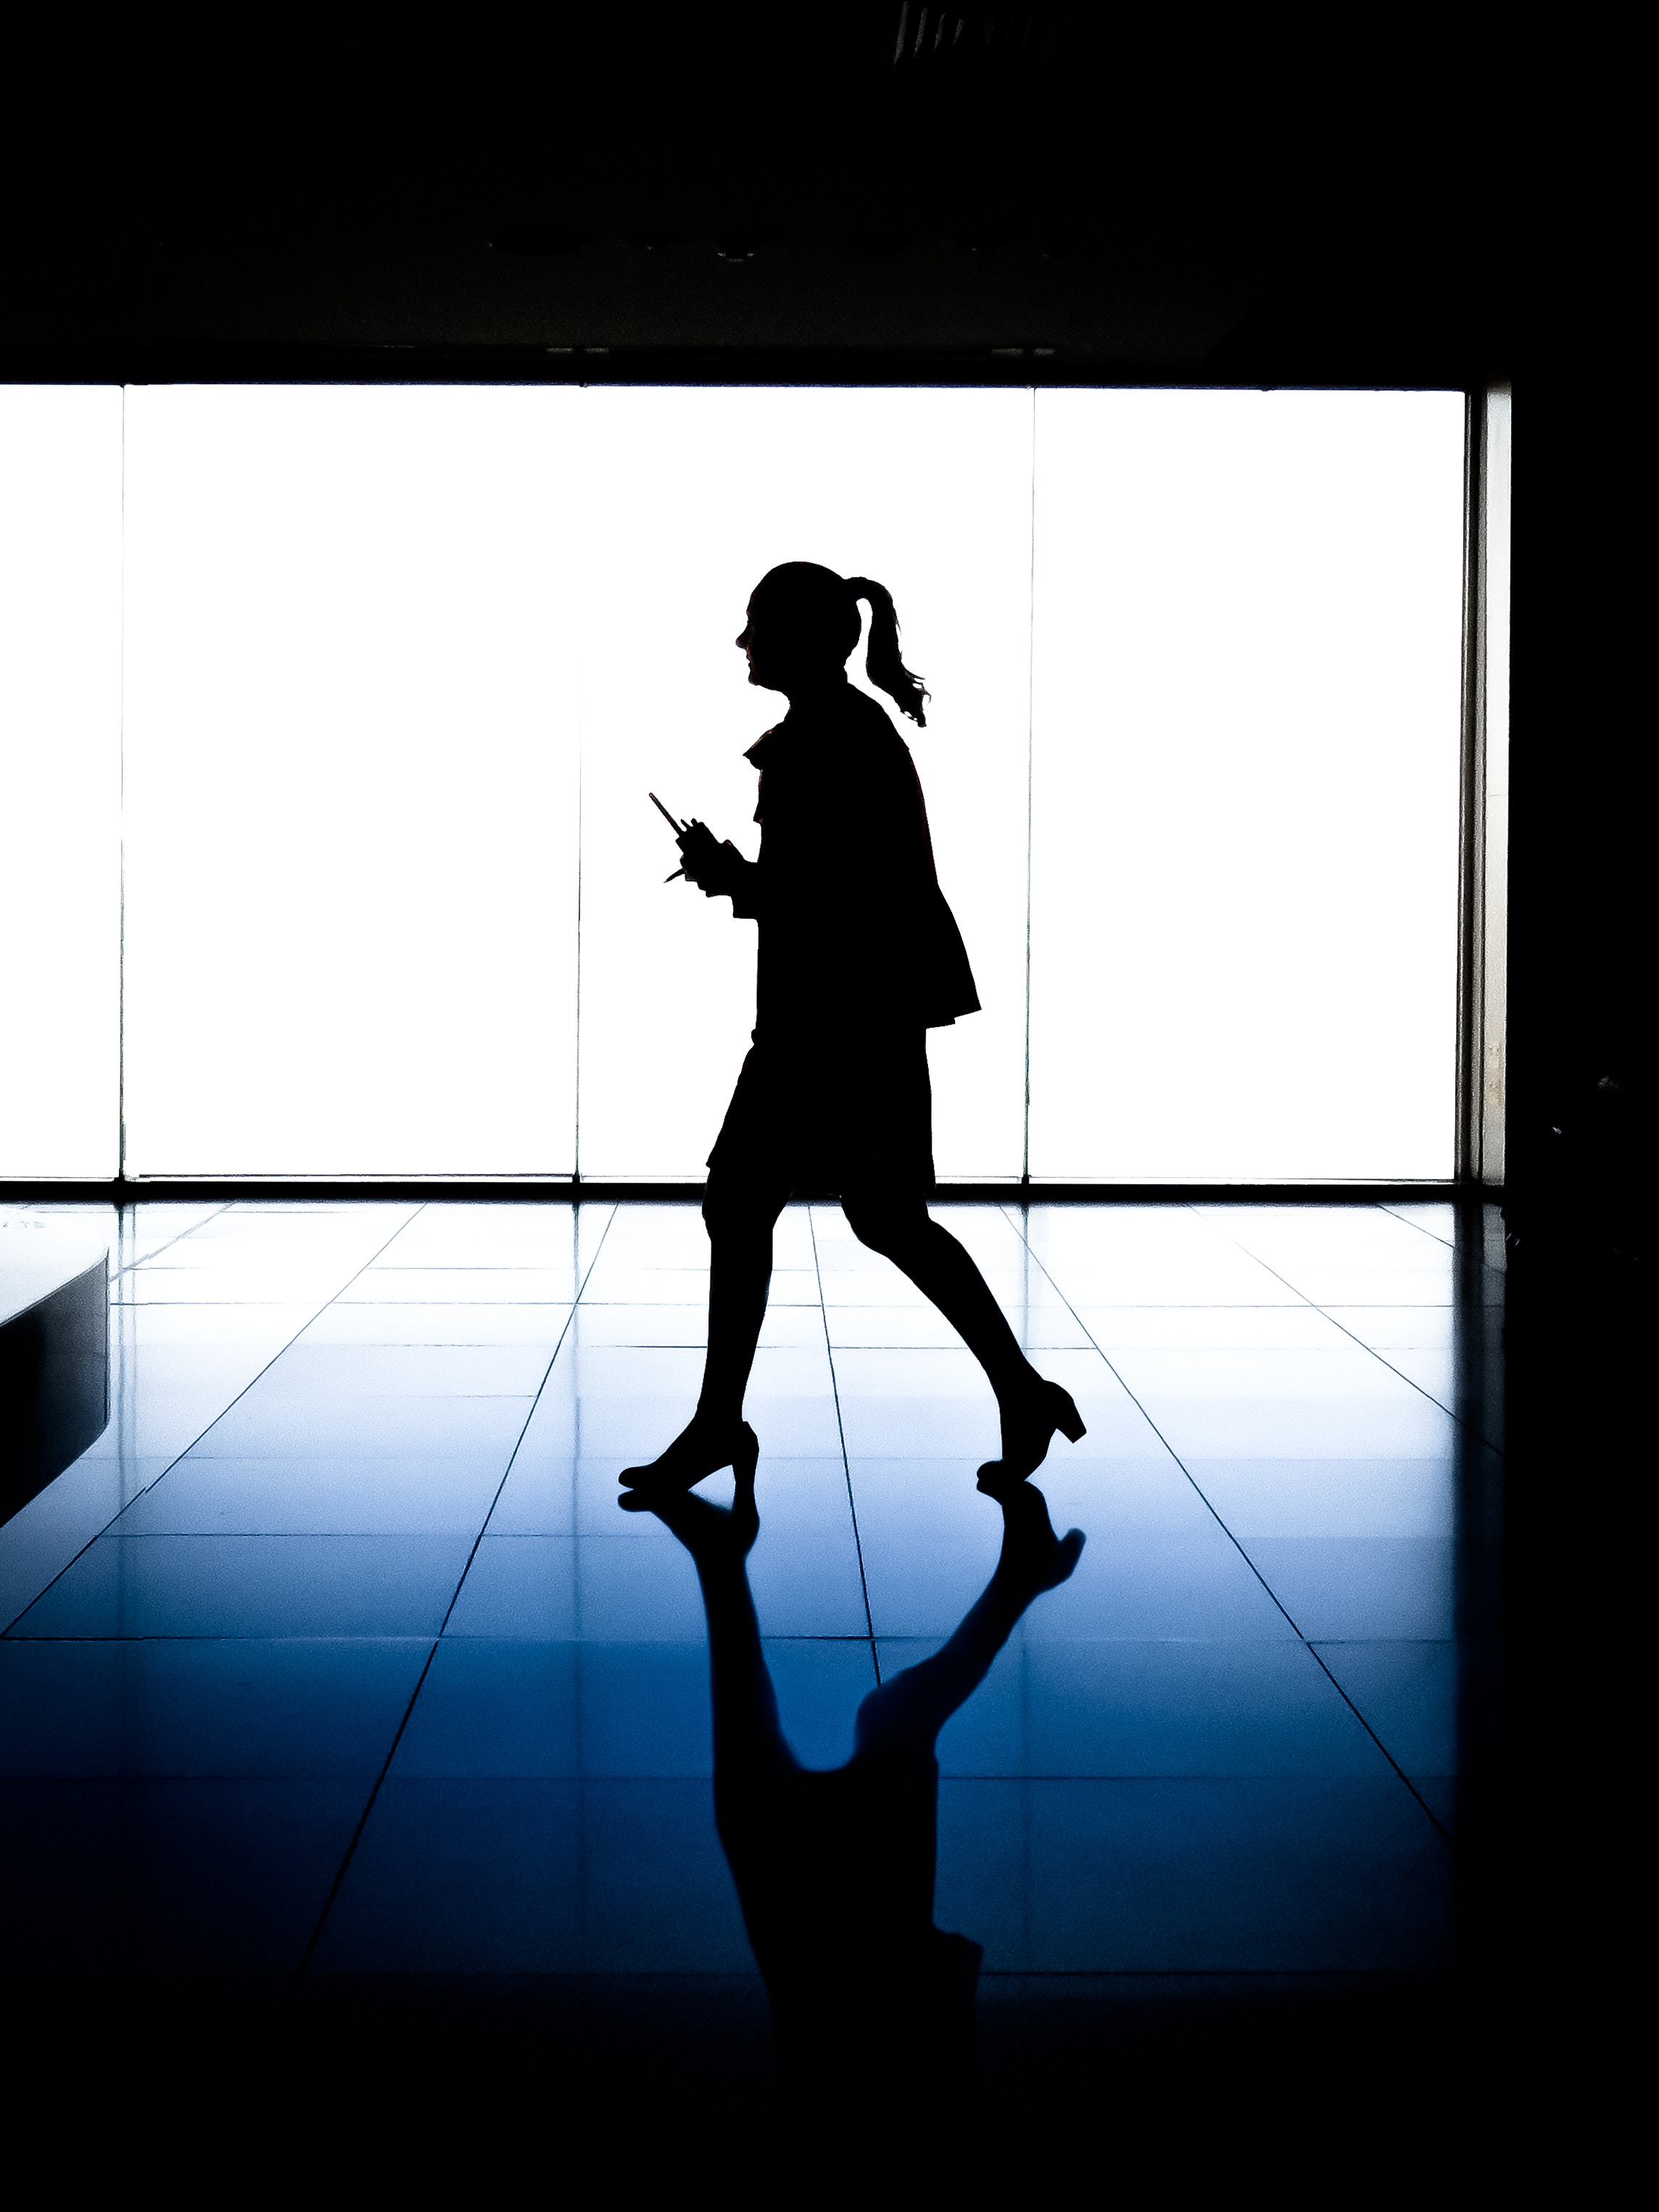 woman walking against blue window